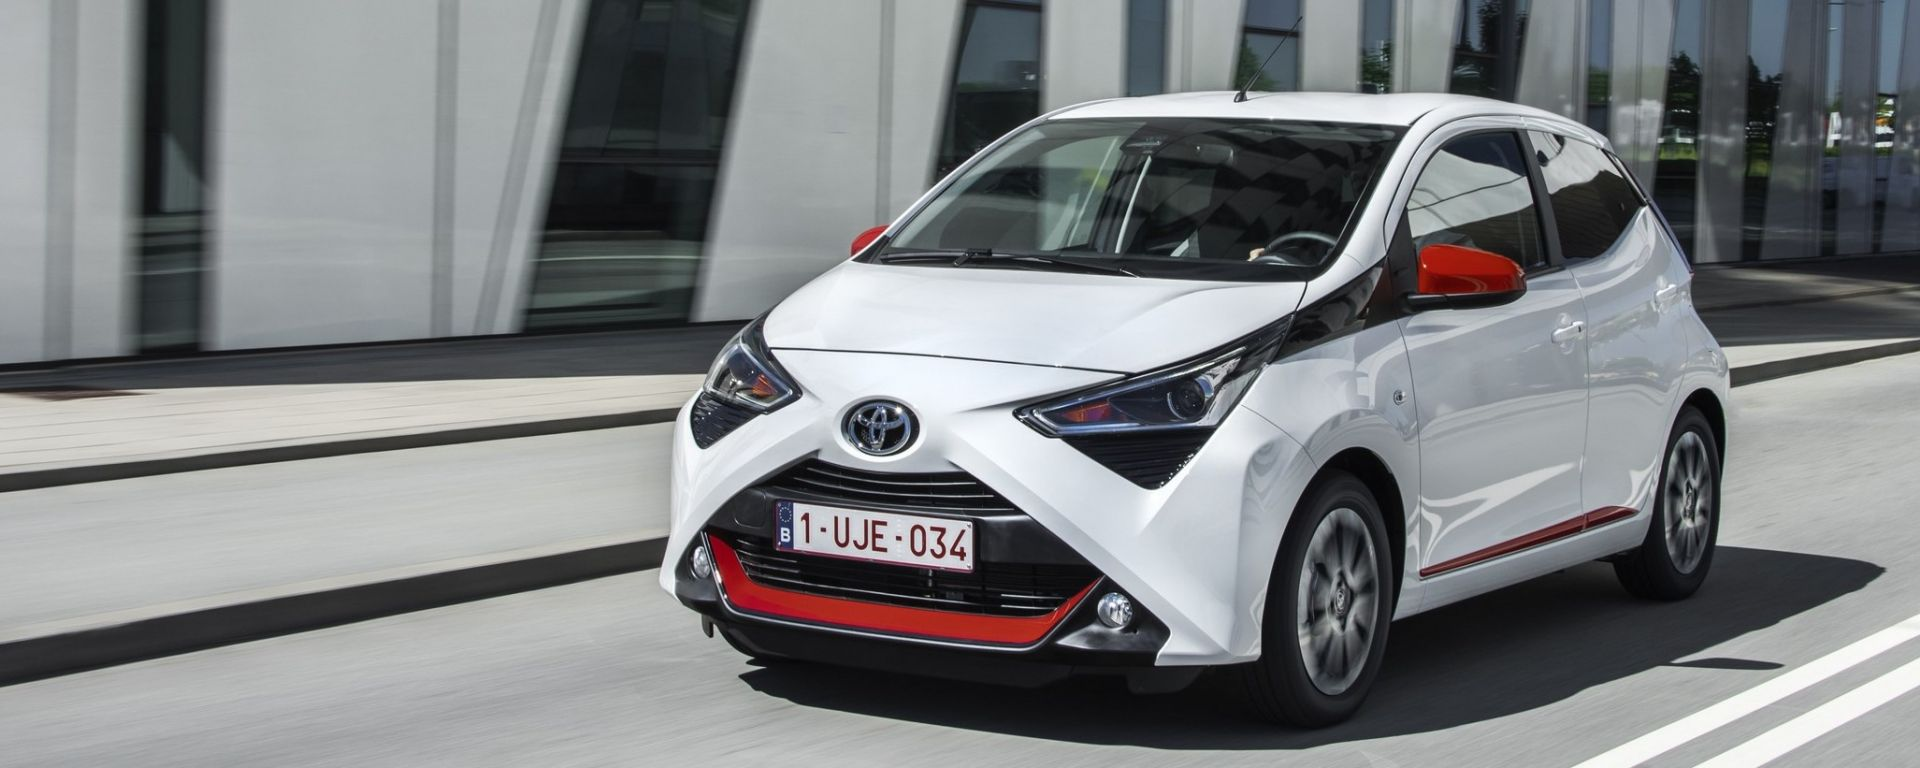 toyota aygo 2018 restyling interni uscita e prezzo motorbox. Black Bedroom Furniture Sets. Home Design Ideas